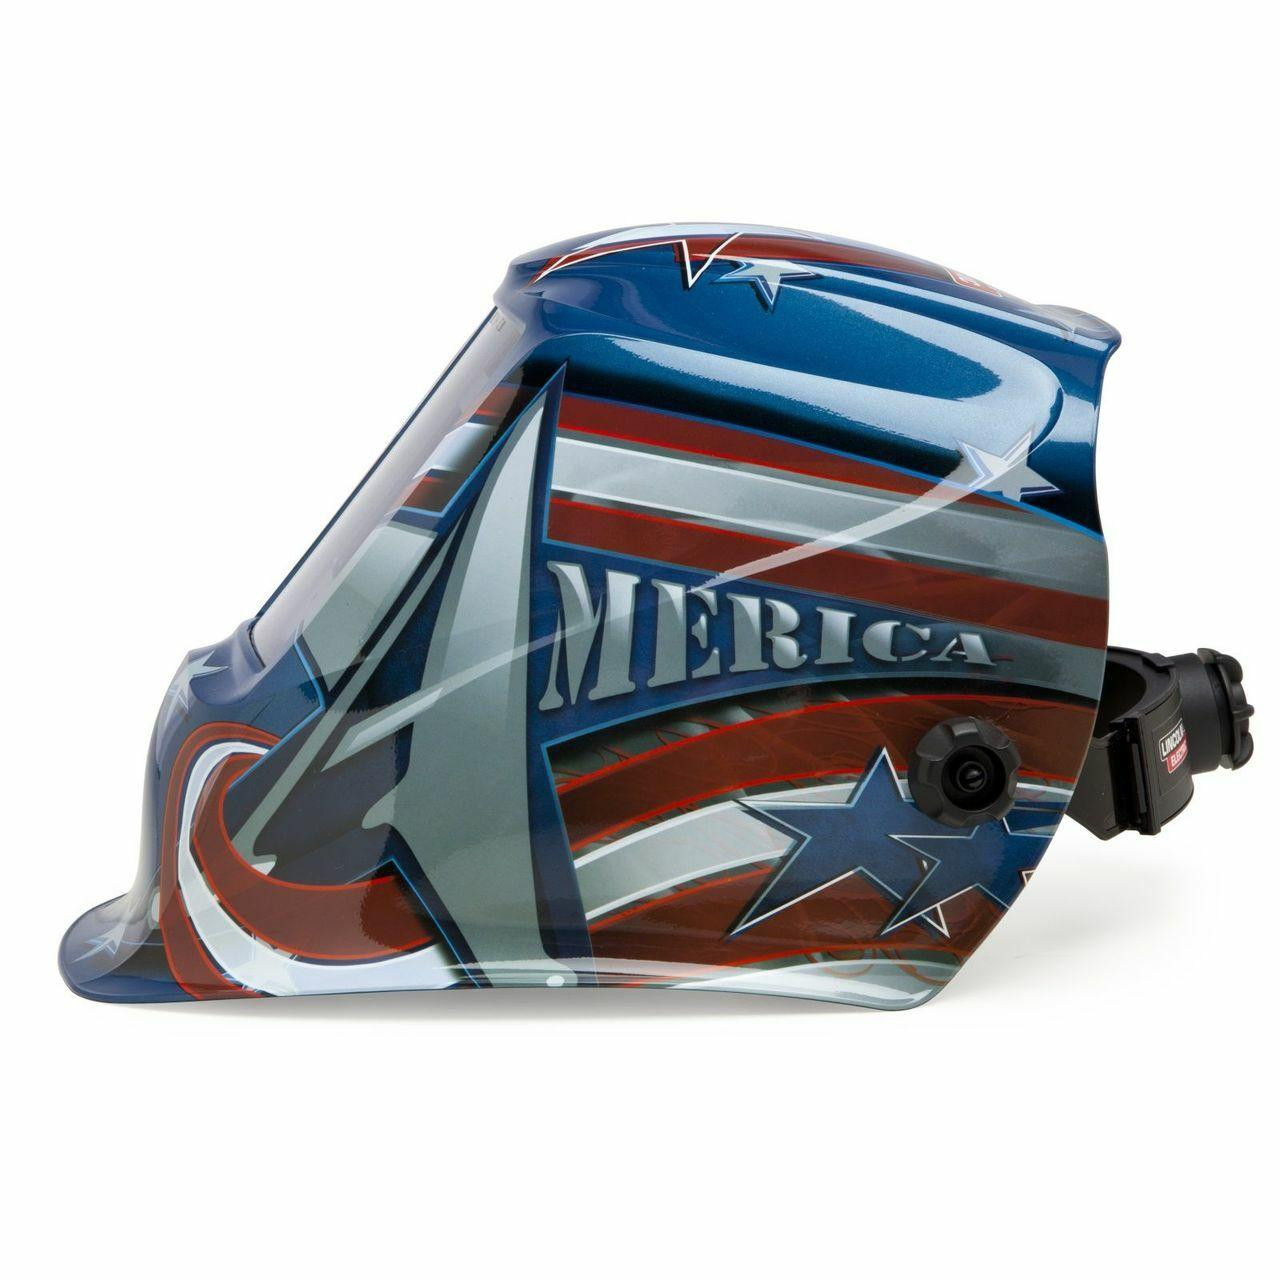 Lincoln Viking All American 1840 Welding Helmet K3173-3